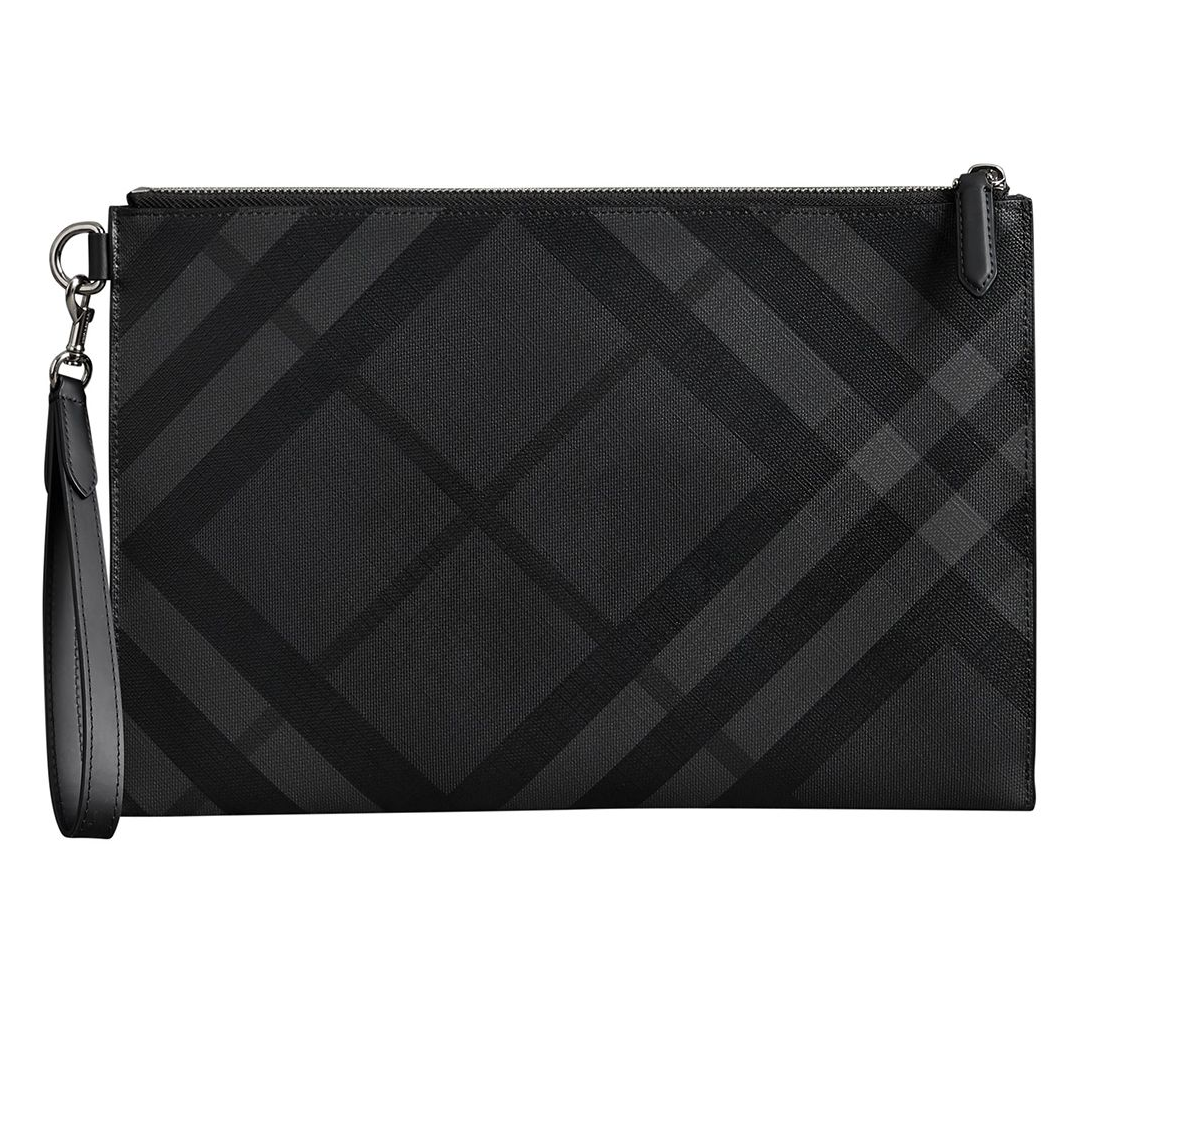 Burberry Charcoal / Black London Check Zip Pouch In Black,grey